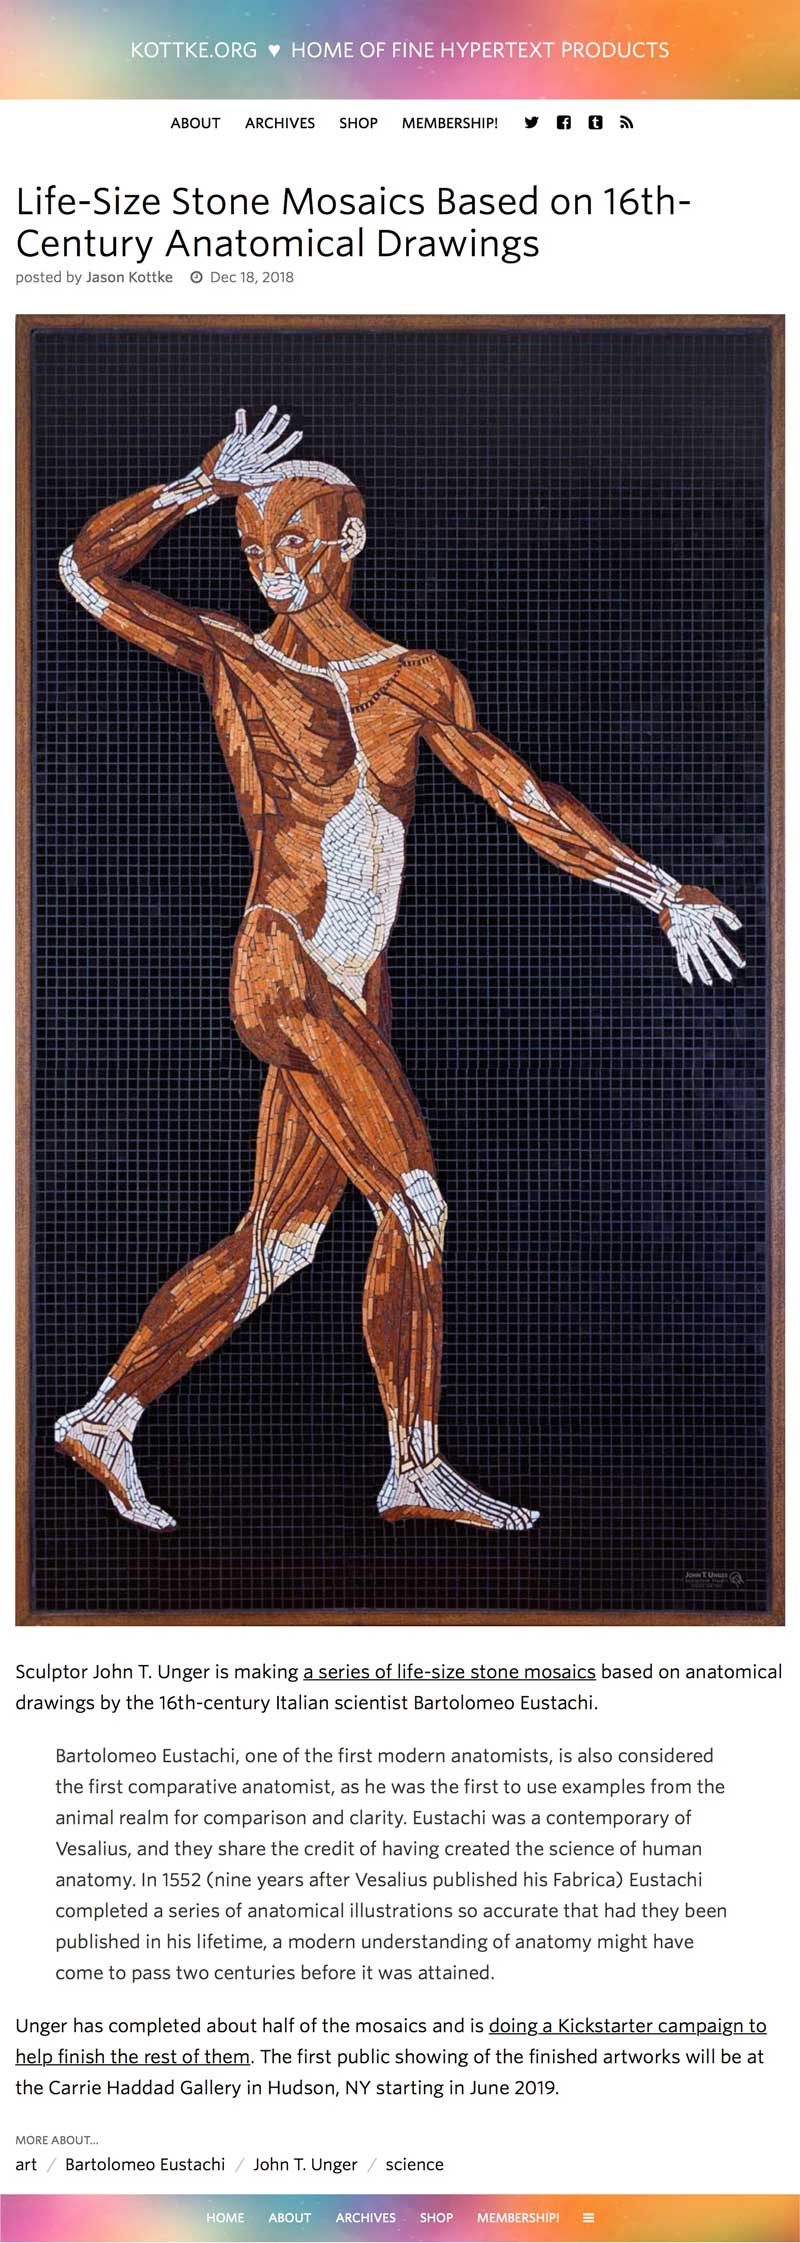 "2018 Kottke, Jason. ""Life-Size Stone Mosaics Based on 16th-Century Anatomical Drawings."" Kottke.org, 18 Dec. 2018, kottke.org/18/12/life-size-stone-mosaics-based-on-16th-century-anatomical-drawings."